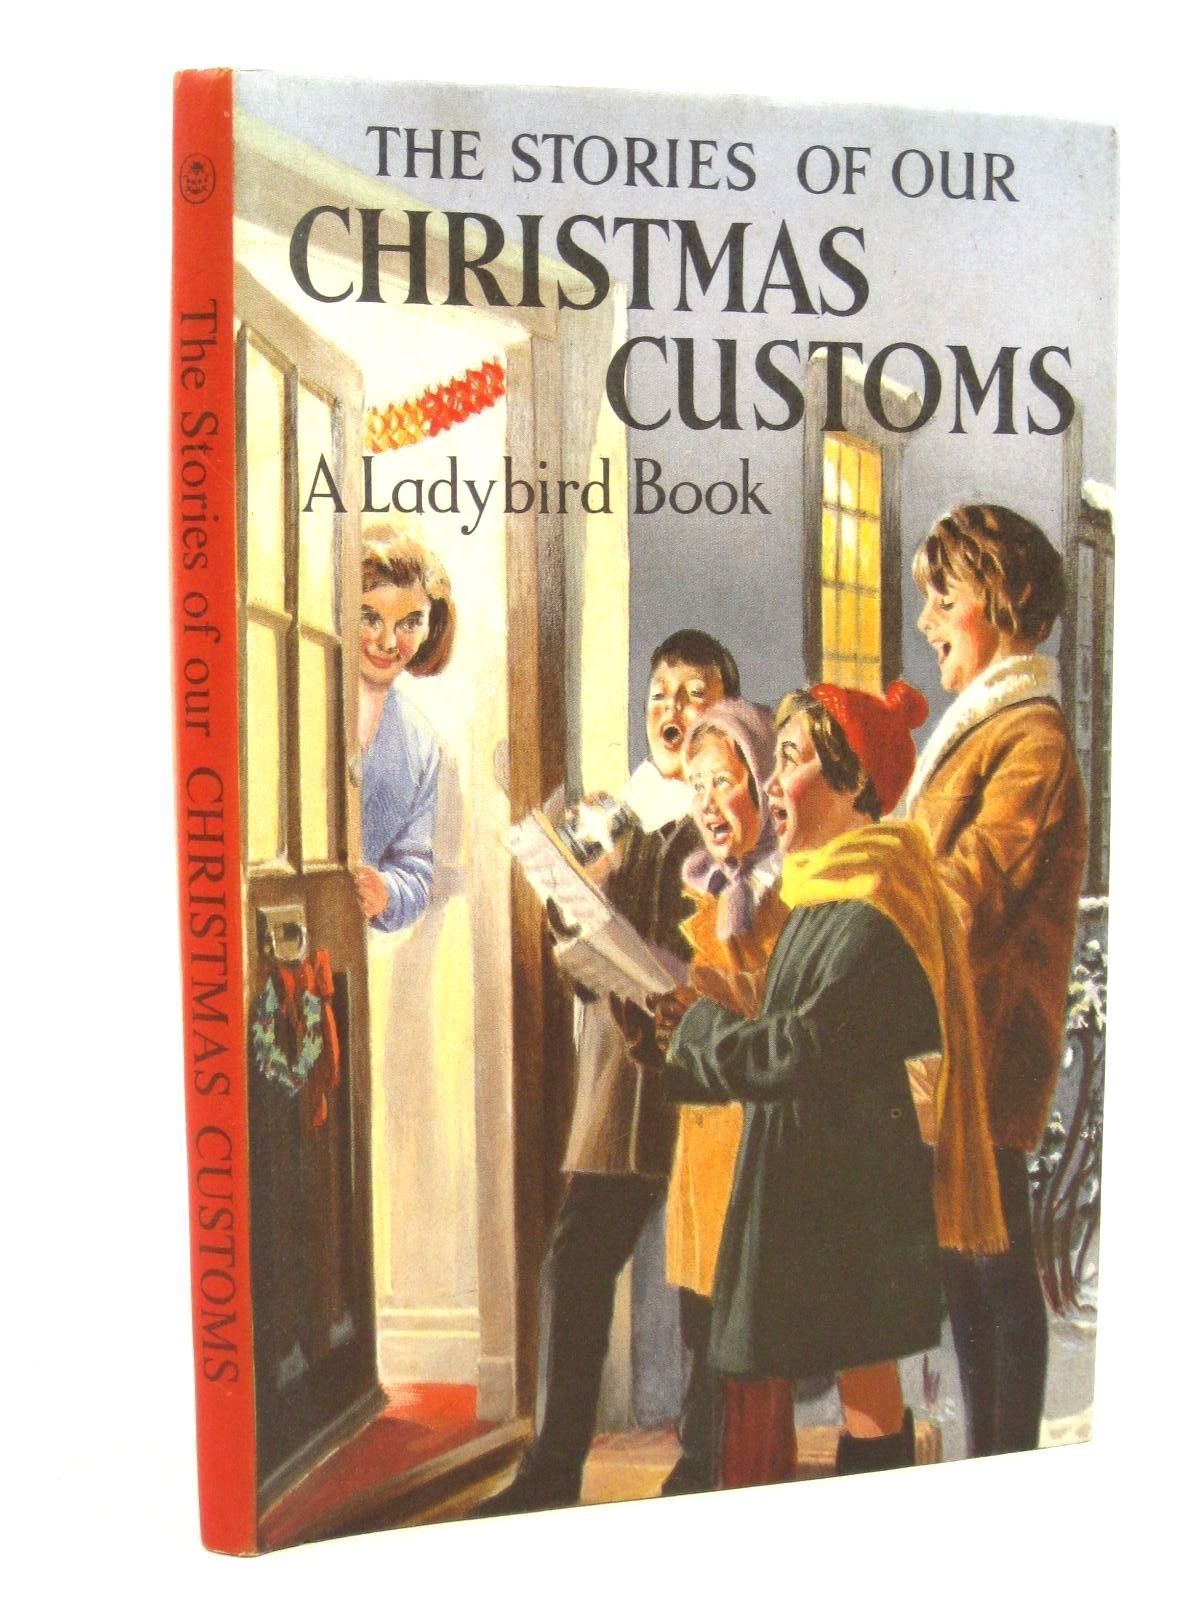 Photo of THE STORIES OF OUR CHRISTMAS CUSTOMS written by Pearson, N.F. illustrated by Hampson, Frank published by Wills & Hepworth Ltd. (STOCK CODE: 1316796)  for sale by Stella & Rose's Books